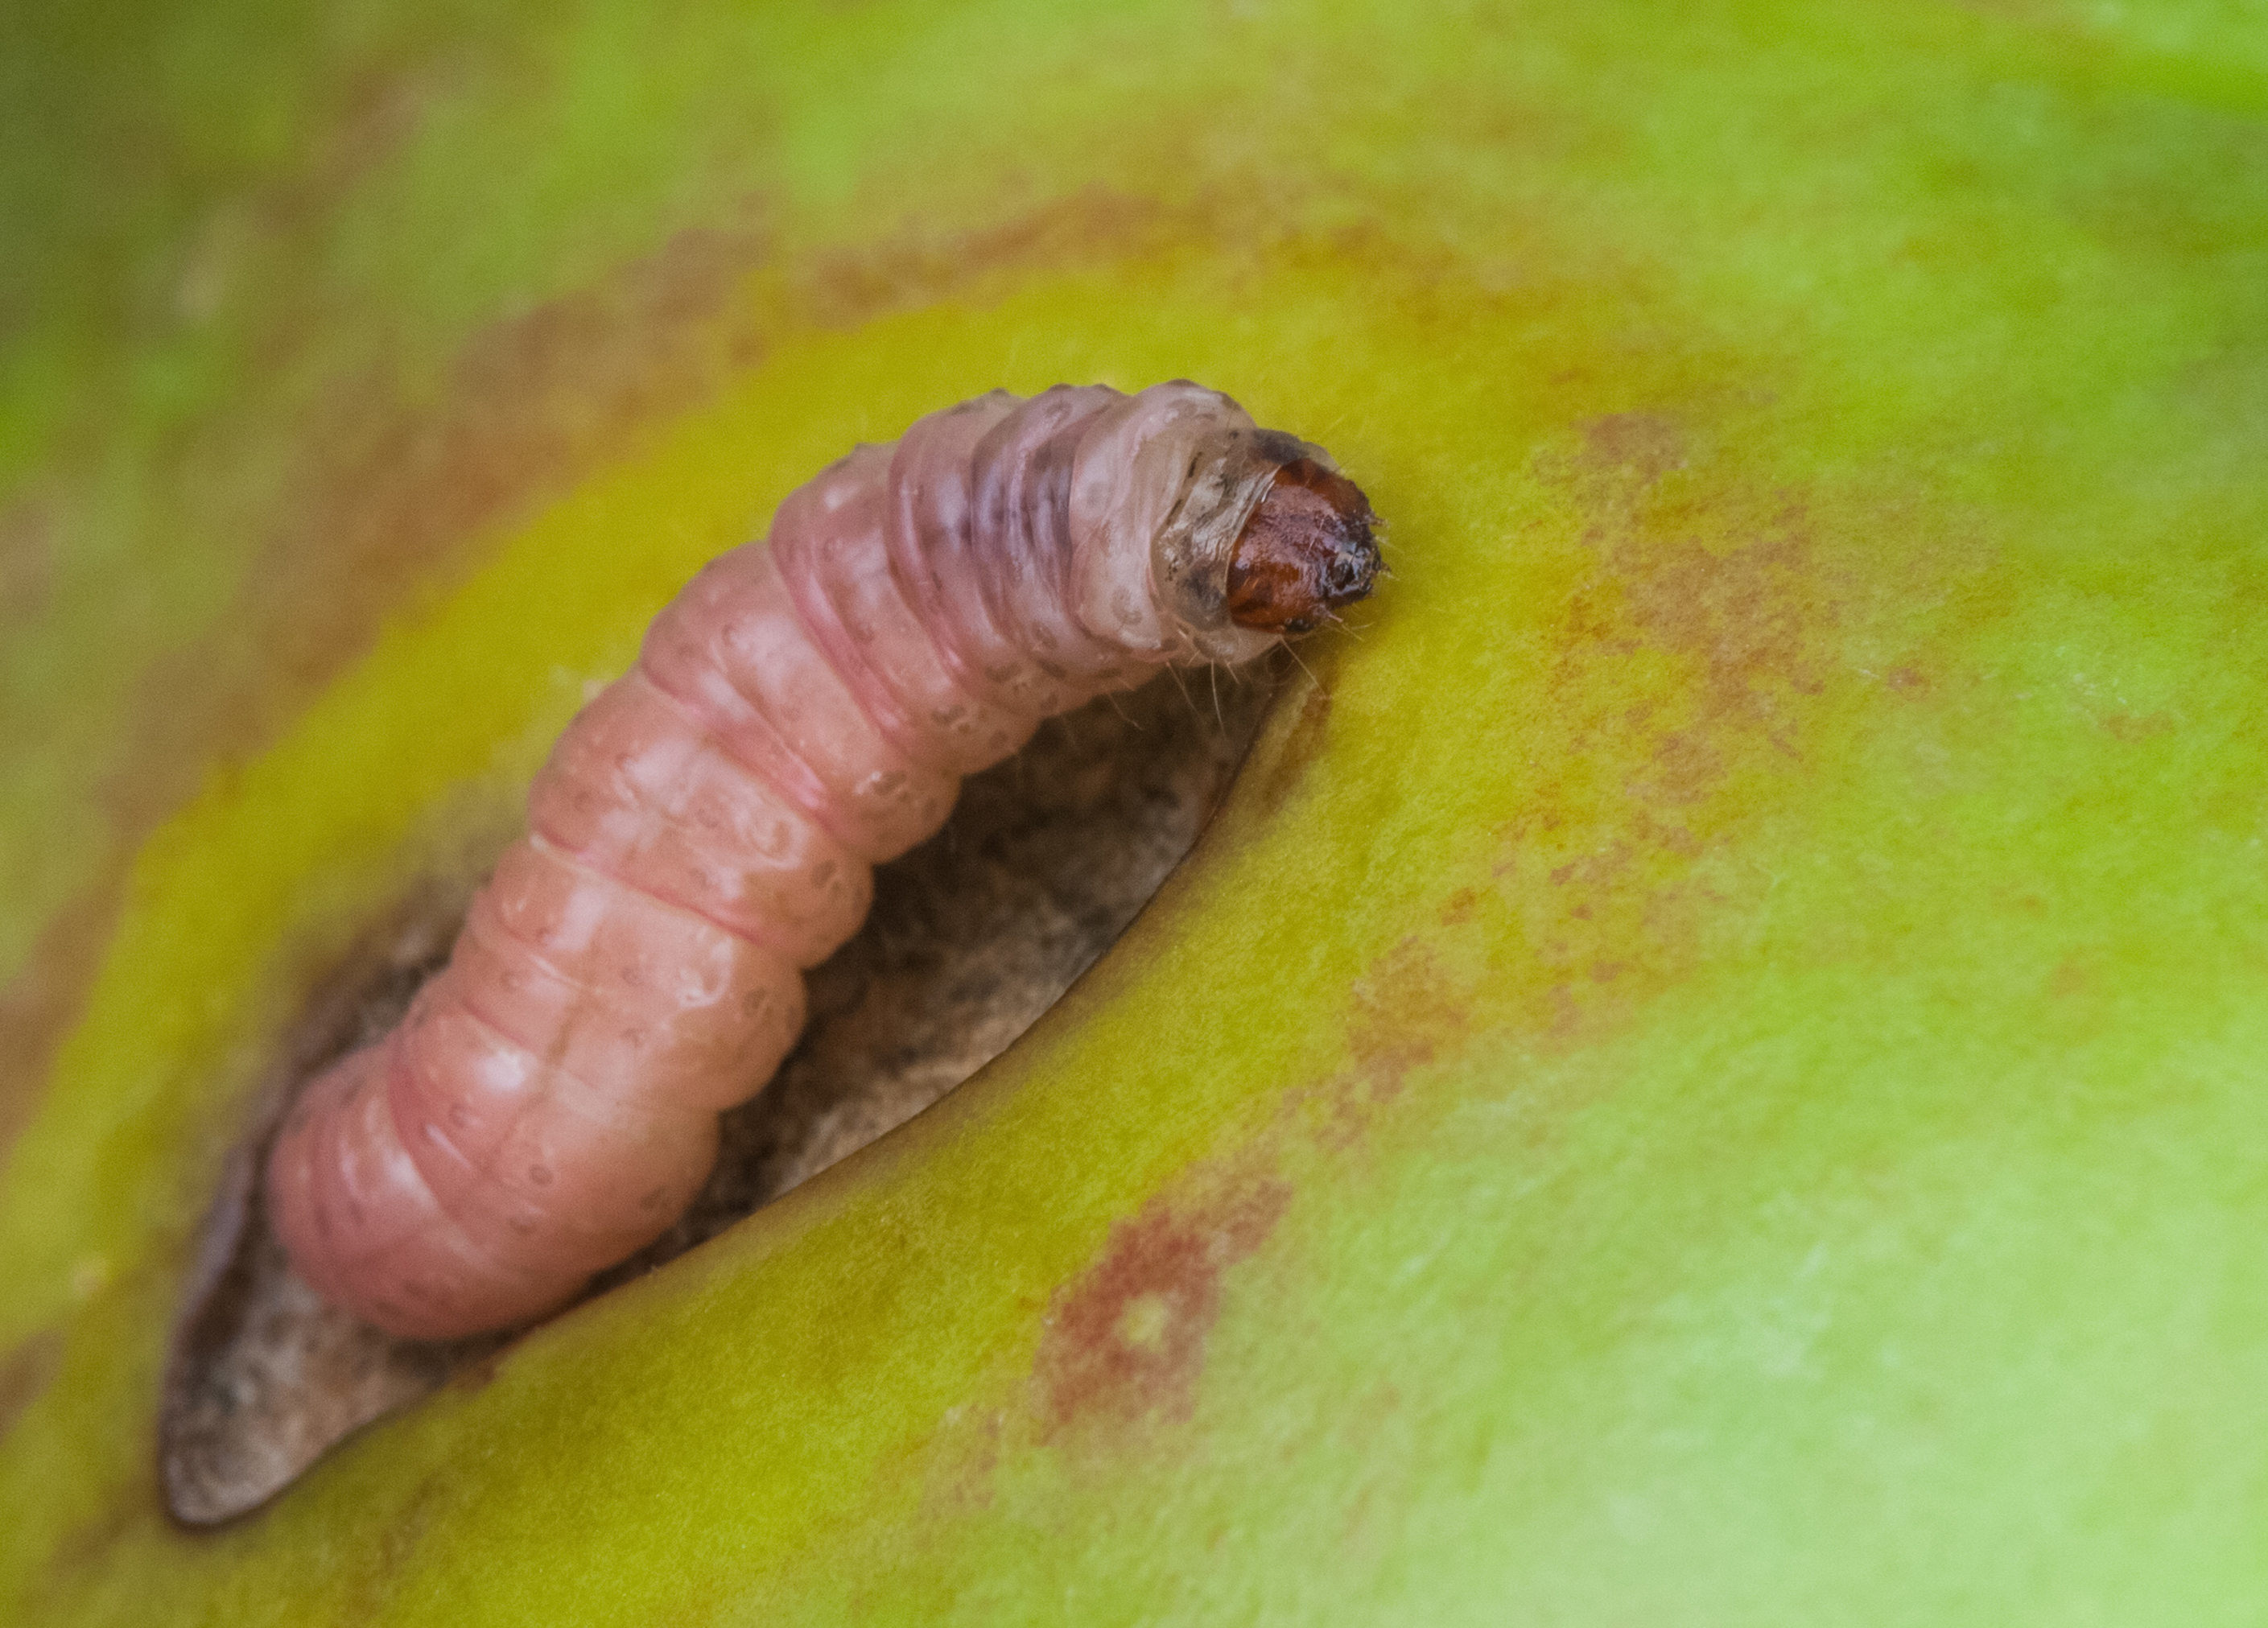 Codling moth larvae can devastate apples (iStock/PA)